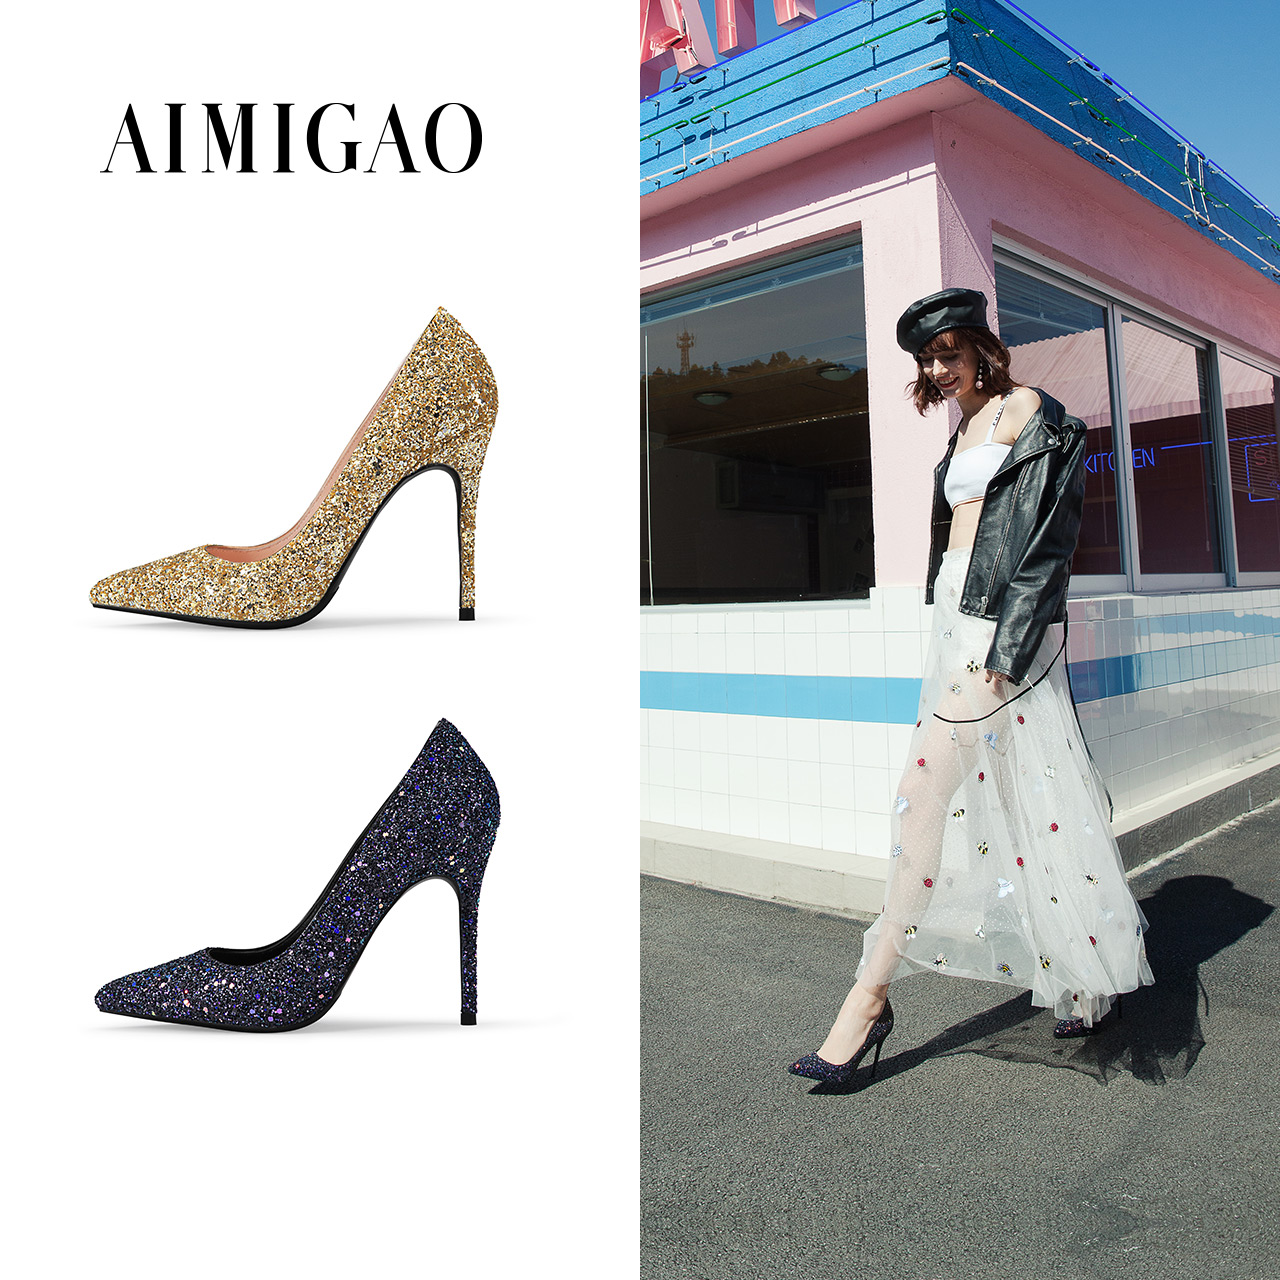 AIMIGAO Pointed Toe Women Glittering Pumps Shoes Glitter Sexy High Heels Bling Fashion Wedding Party Shoes Pumps 2018 Spring New sparkling glitter pointed toe pumps fashion shoes with matching clutch bag bling bling kit silver red party queen set prom kit